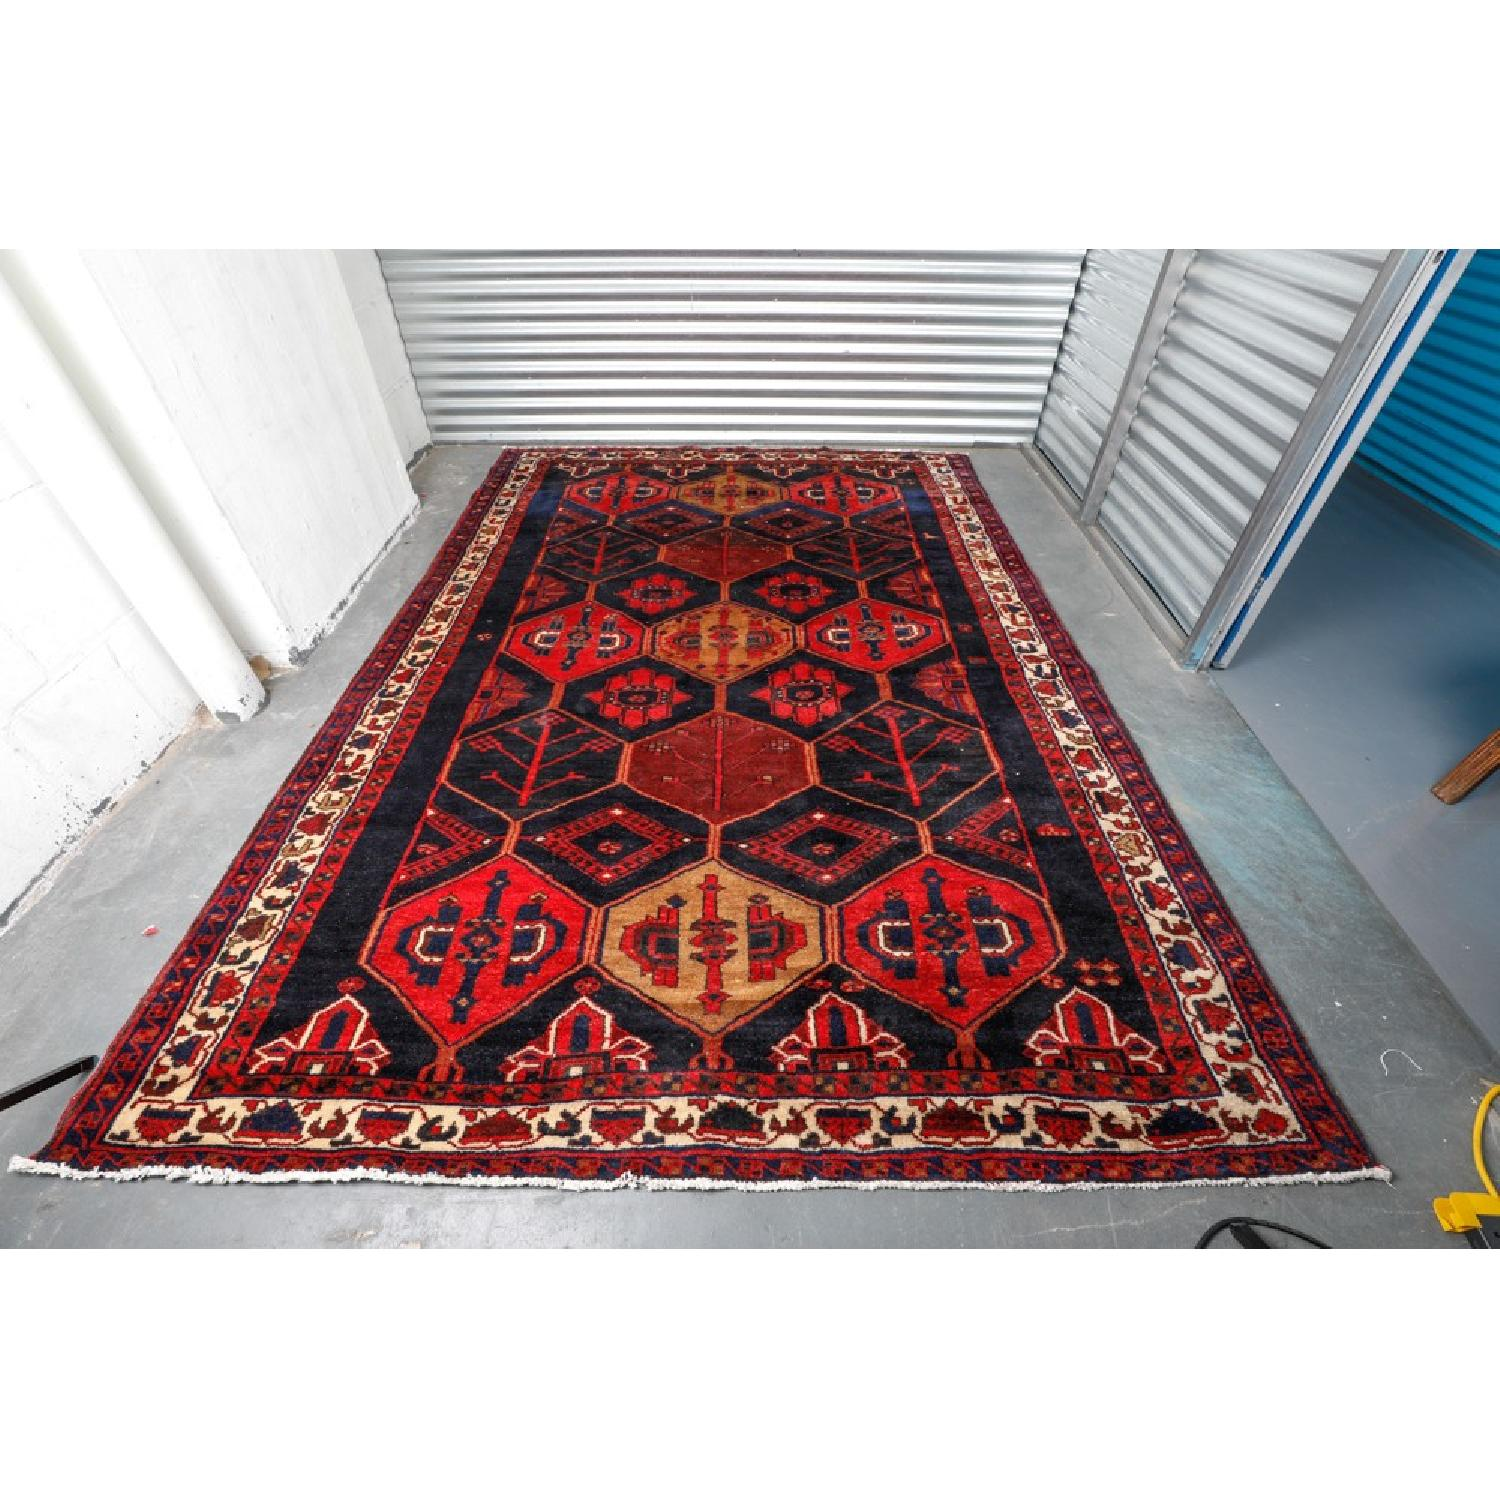 ABC Carpet and Home Patterned Area Rug - image-1